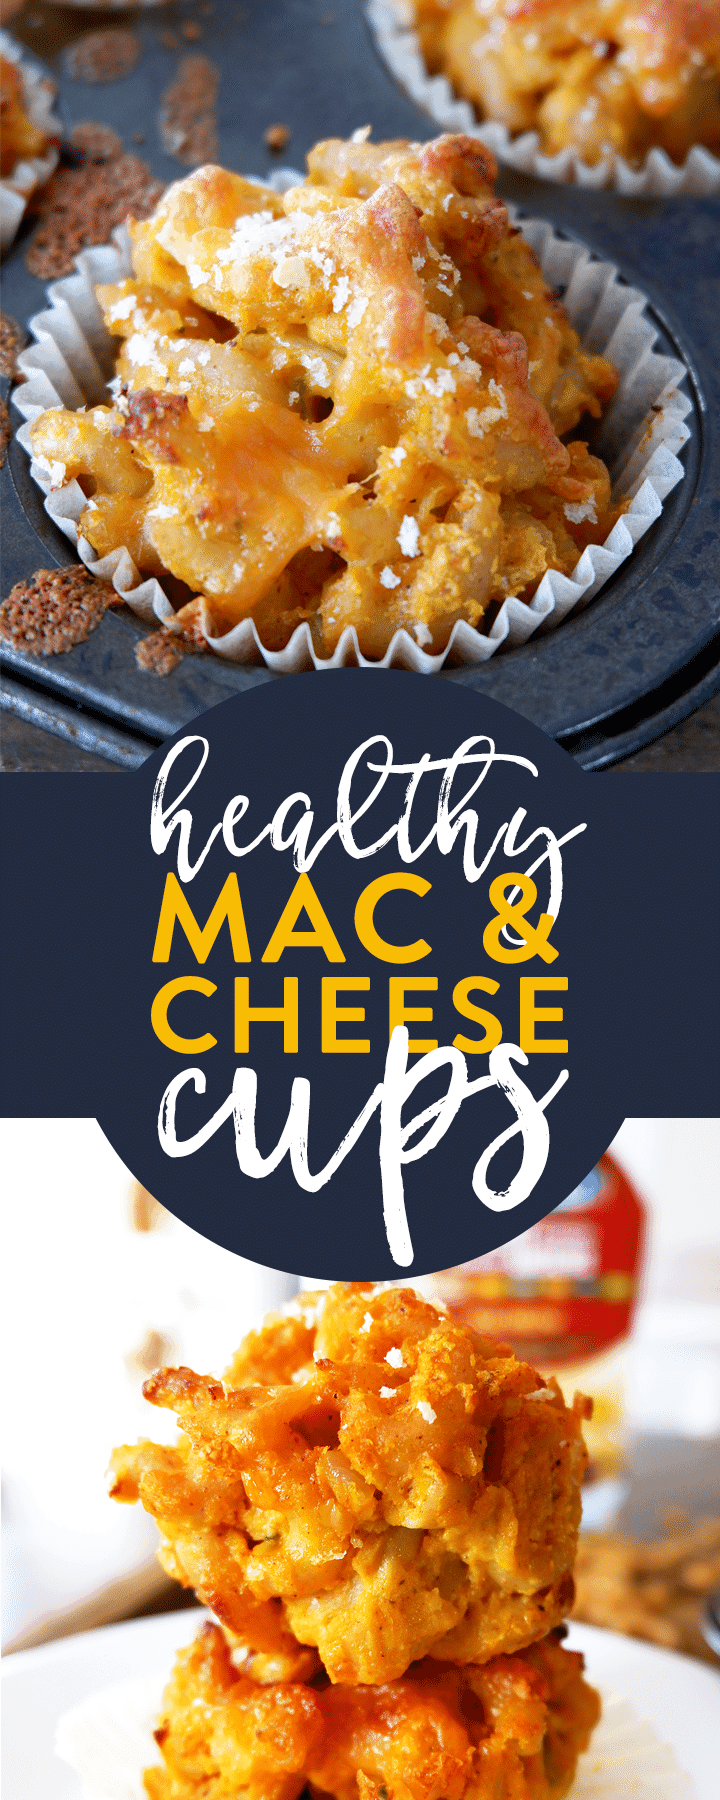 Healthy mac and cheese cups recipe made with a veggie cheese sauce with cauliflower, carrots, and red pepper. Whether you call them macaroni and cheese cups or mac and cheese muffins, you need to add this to your healthy dinner recipes board.